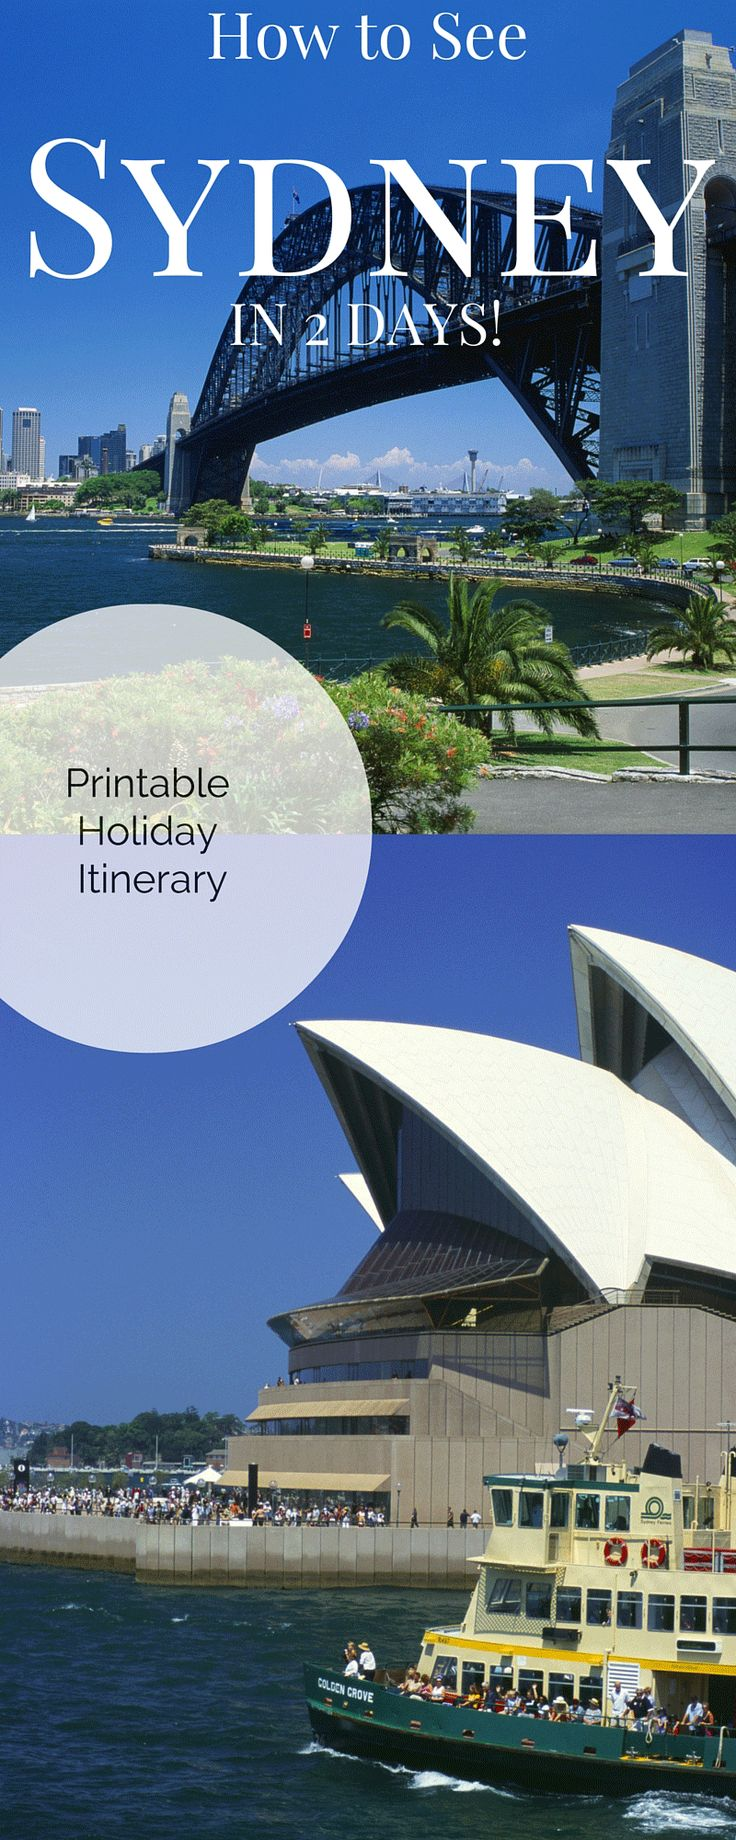 See 14 Top Sydney Tourist Attractions in just 2 days with this printable itinerary!